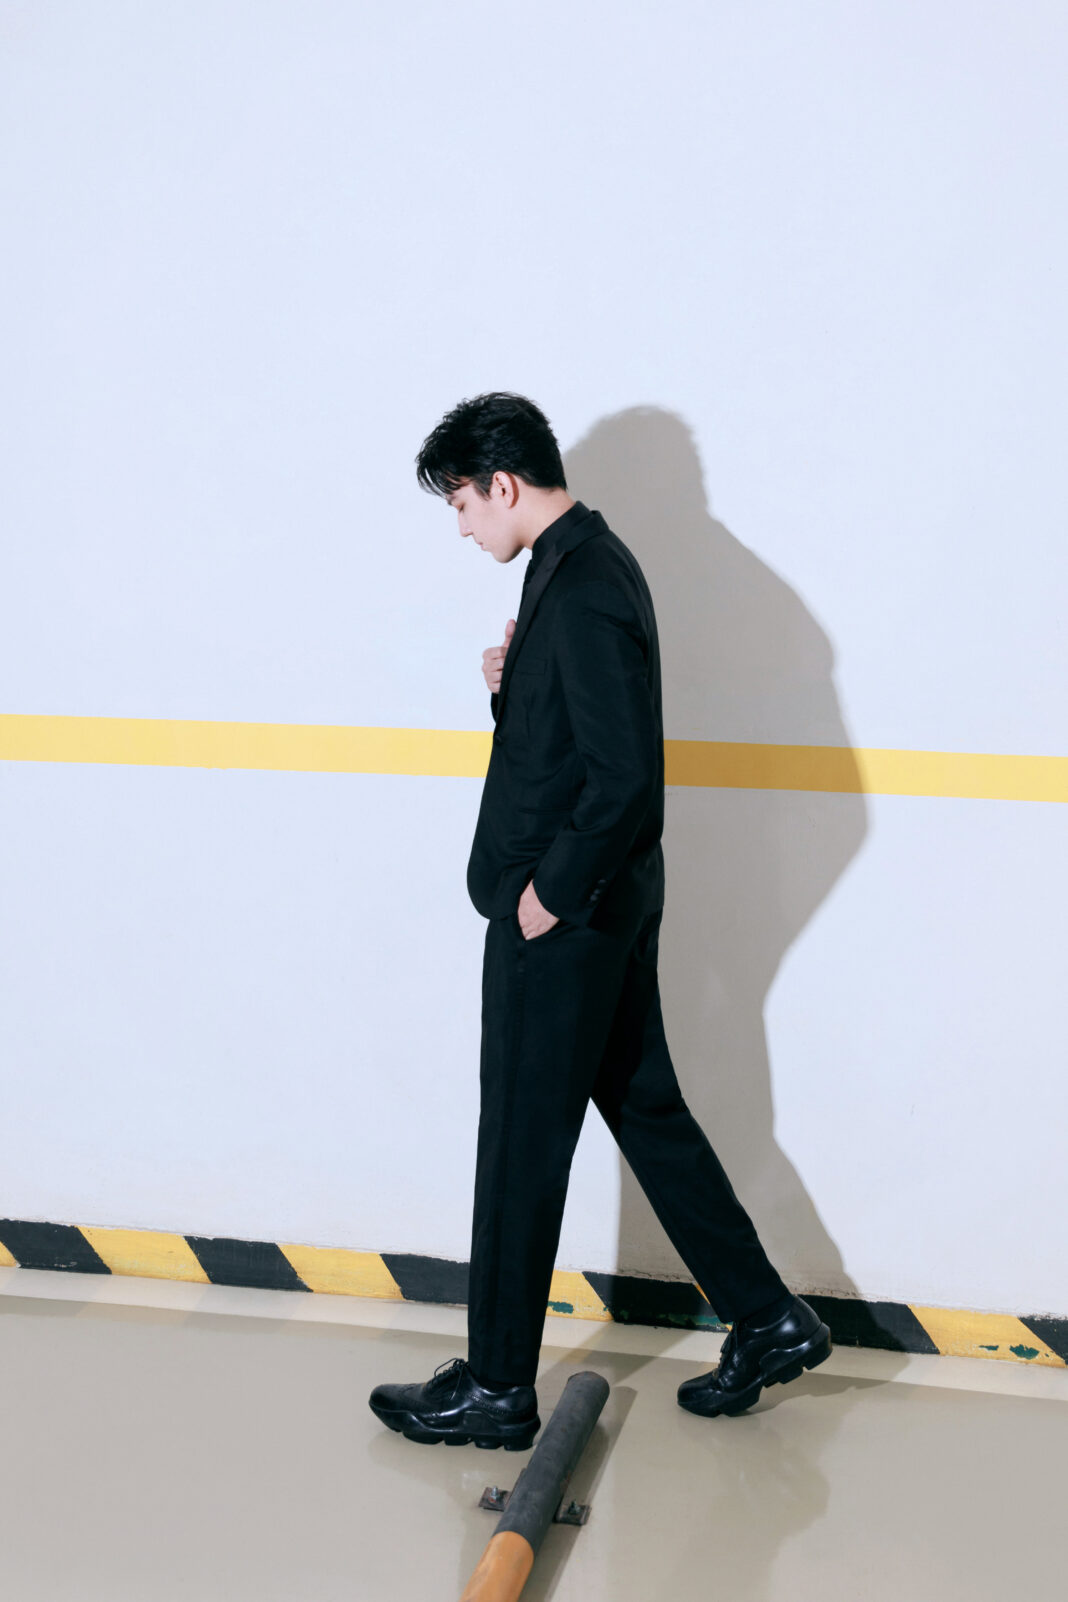 Dimash performed at the Beijing College Student Film Festival